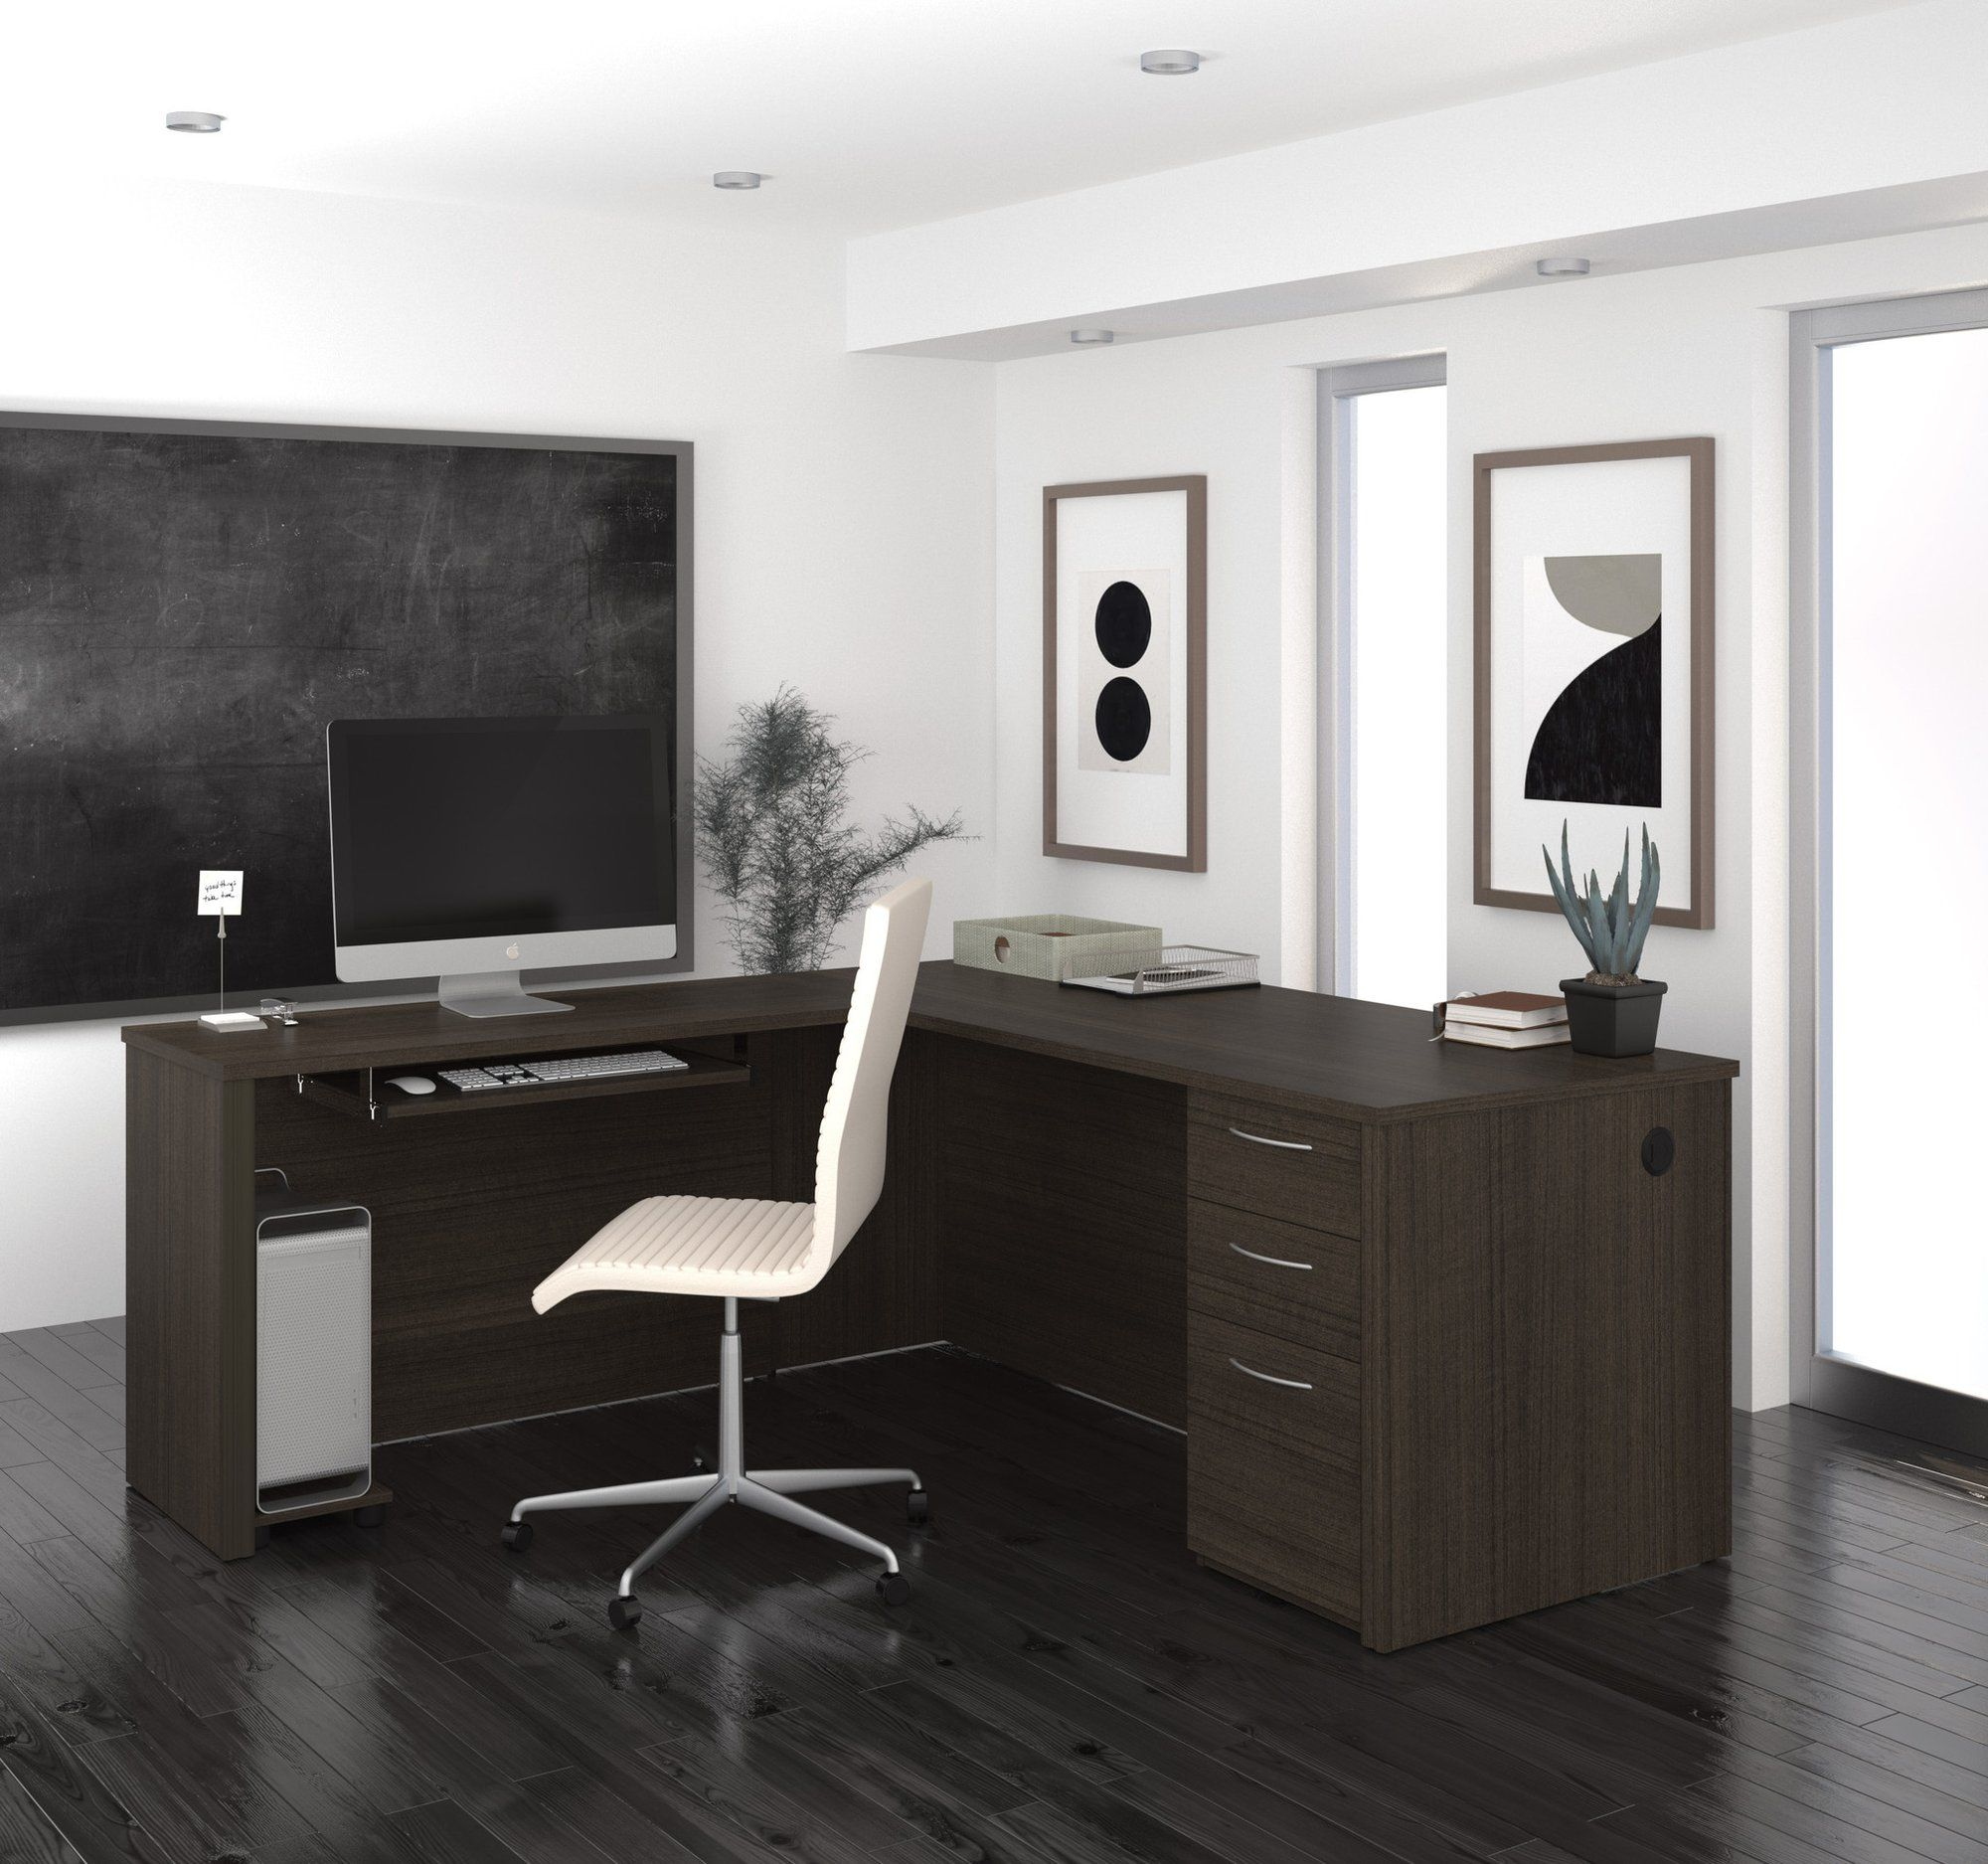 Modern 71 X 76 L Shaped Desk In Dark Chocolate Finish L Shaped